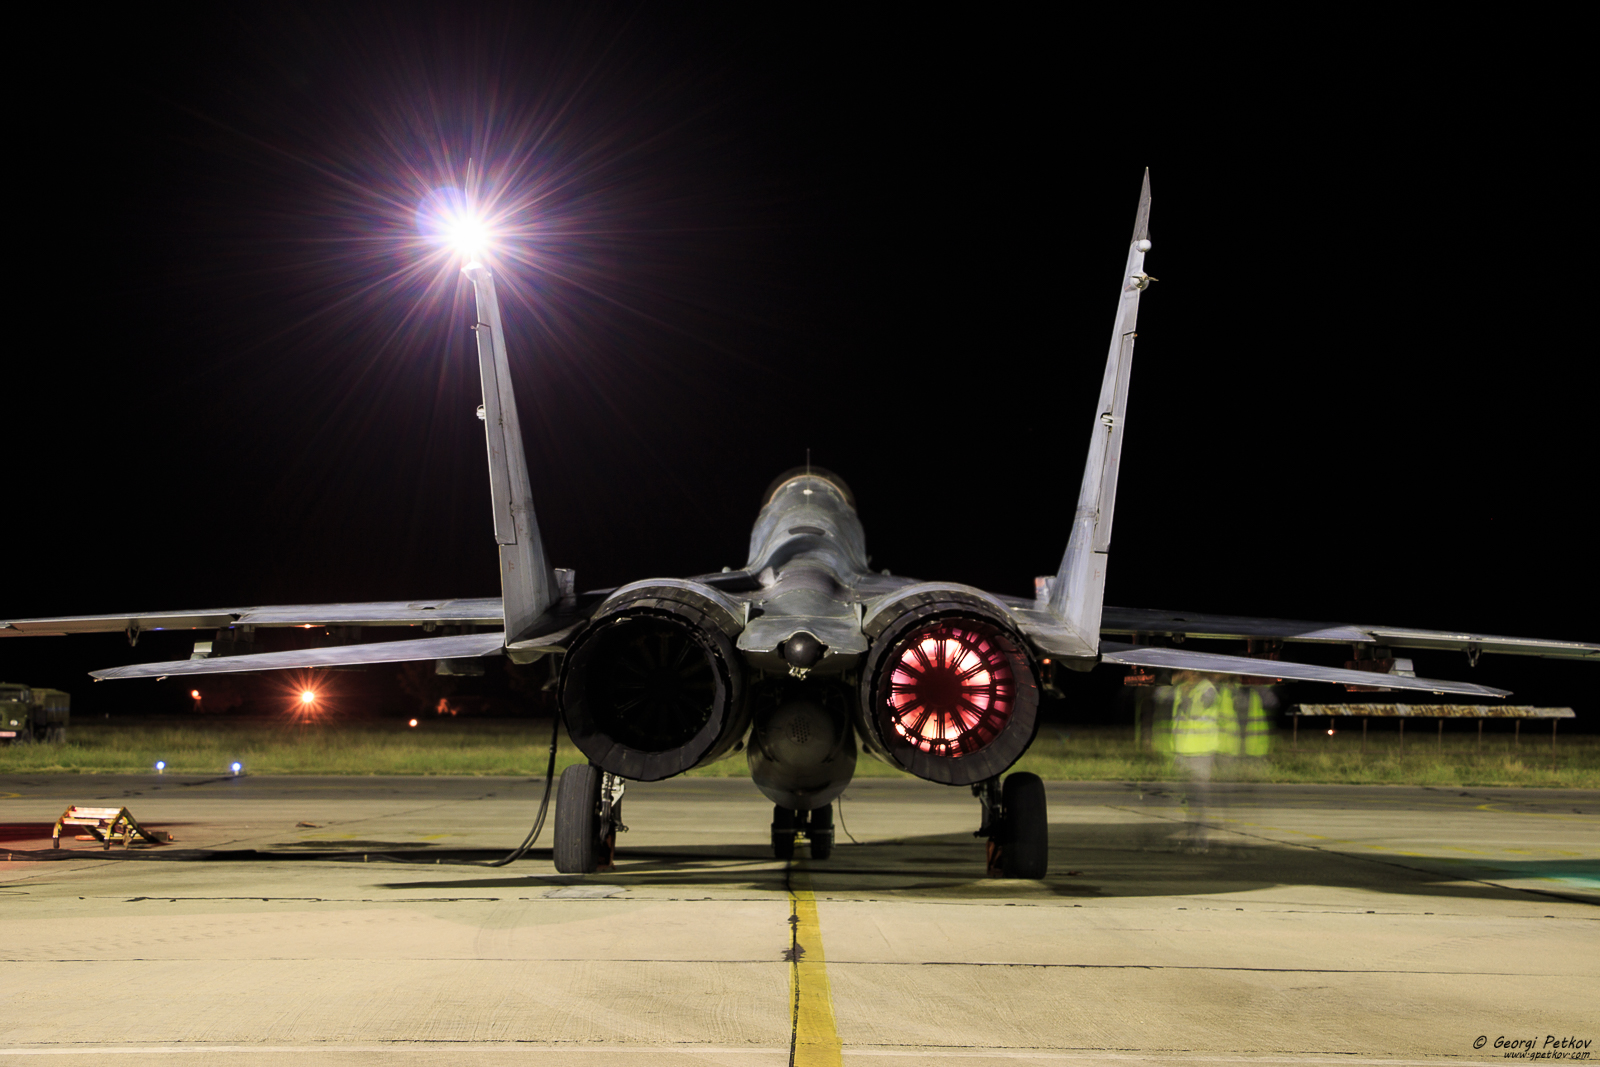 Night flights at Graf Ignatievo Airbase